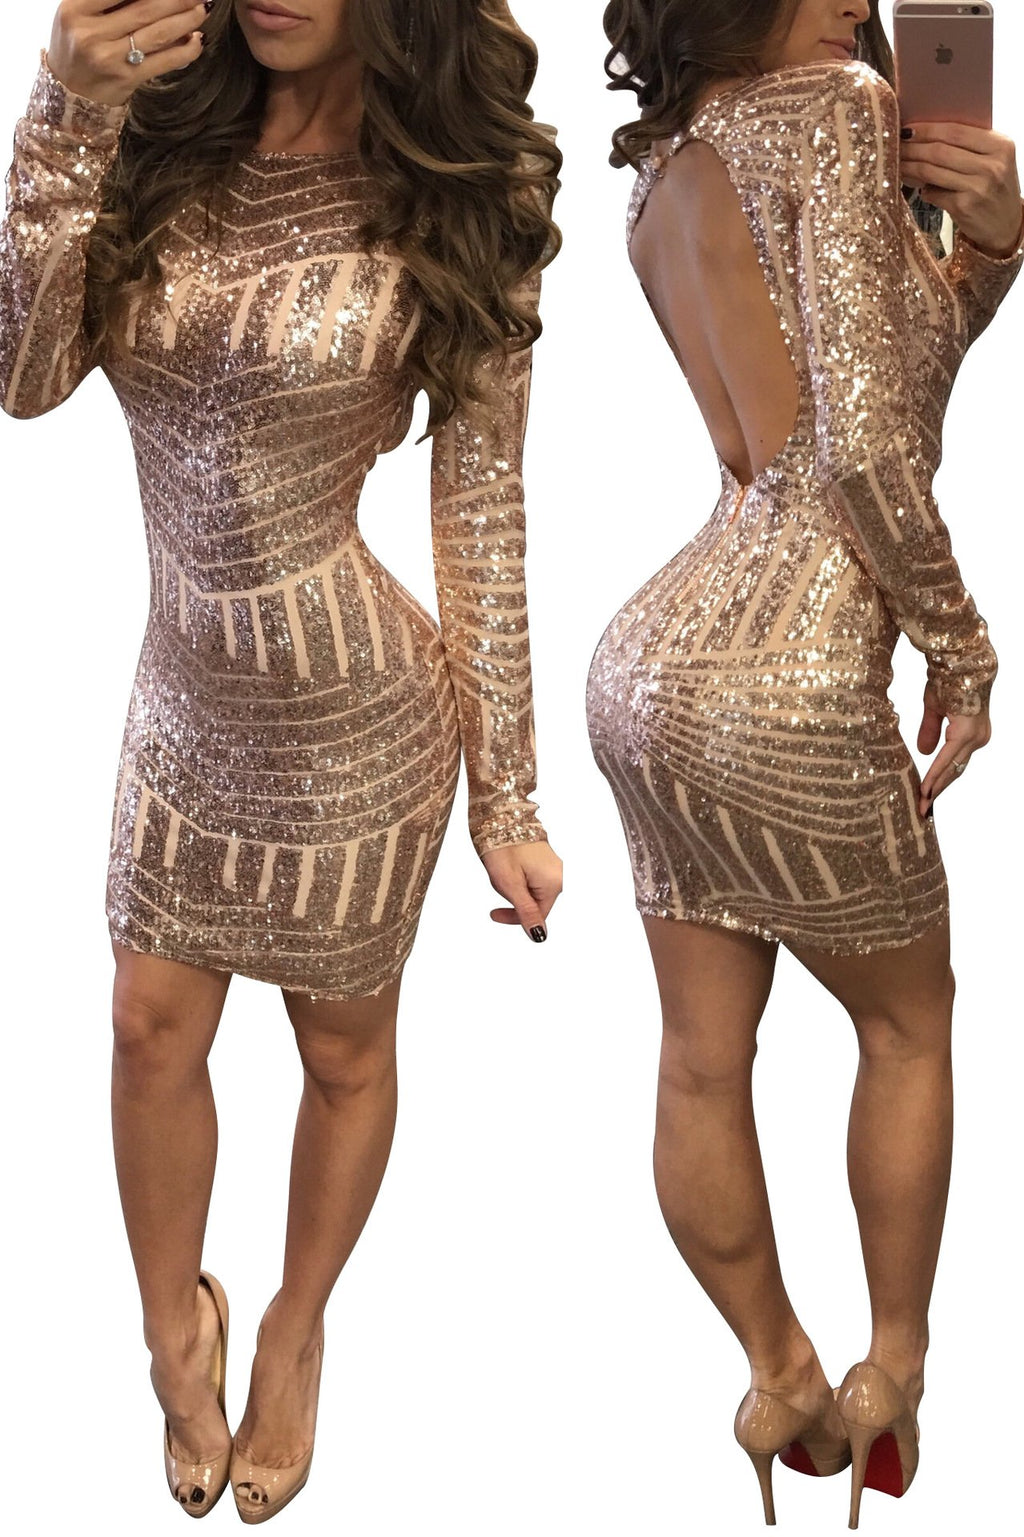 Backless Body Sheath Striped Sequins Short Dress